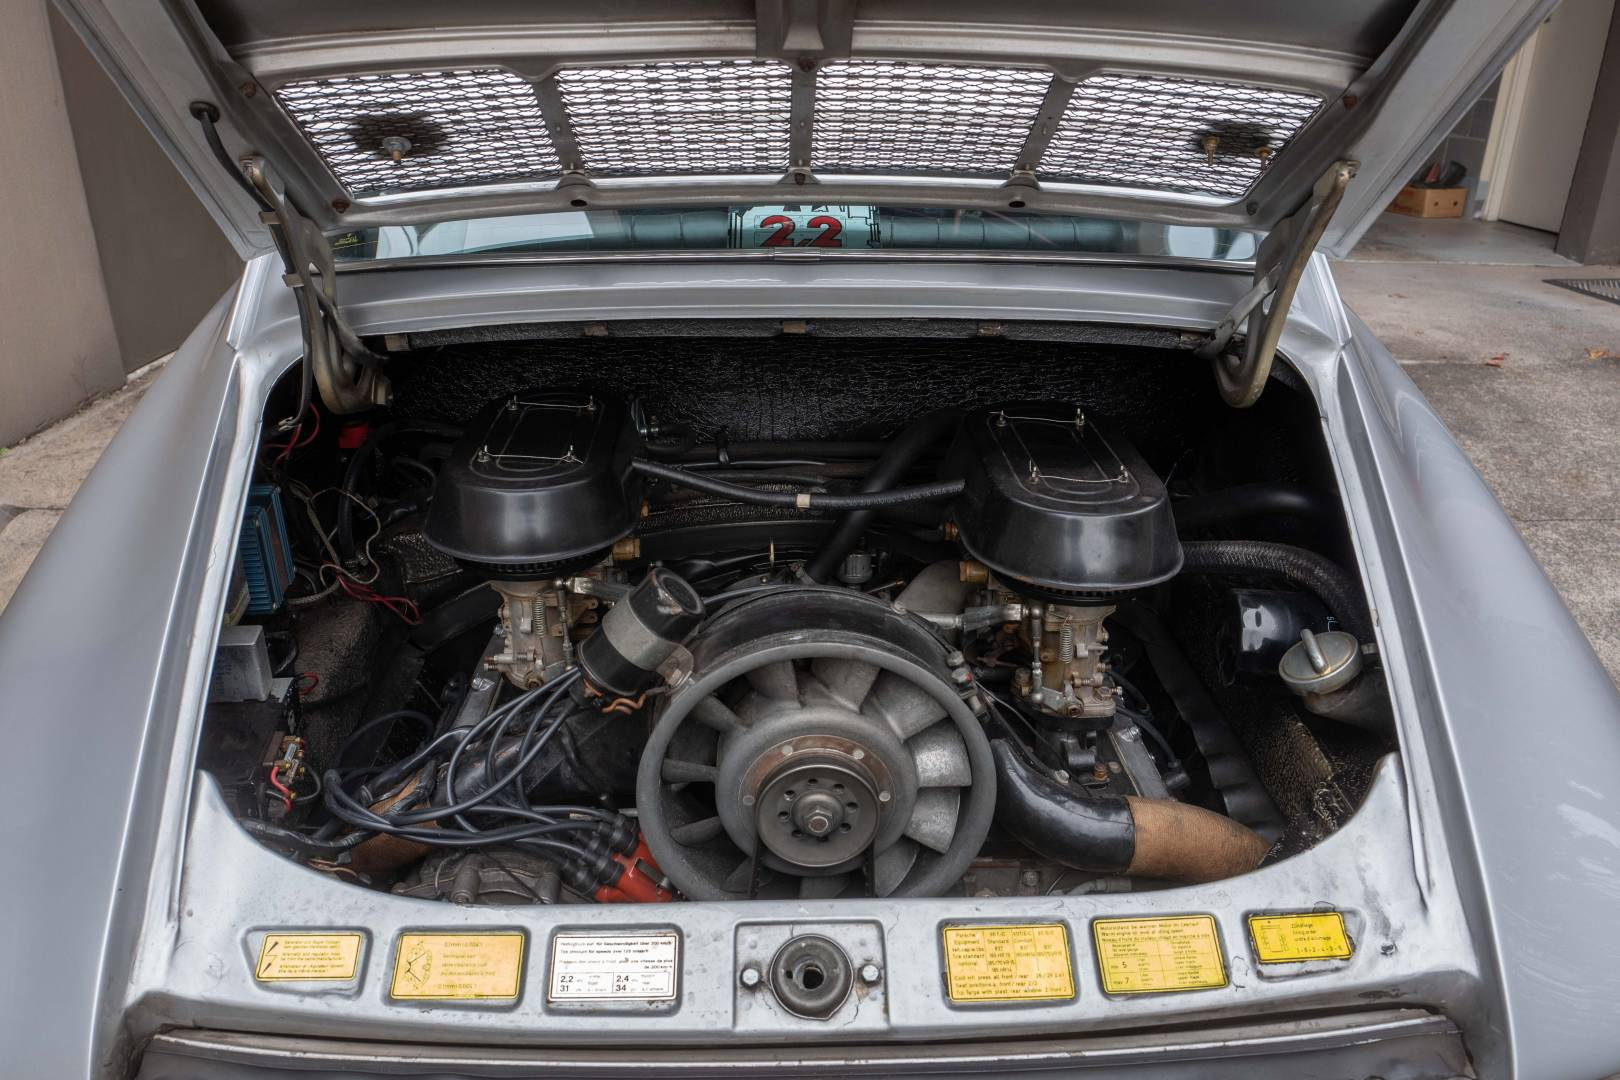 The restored engine bay as it is now